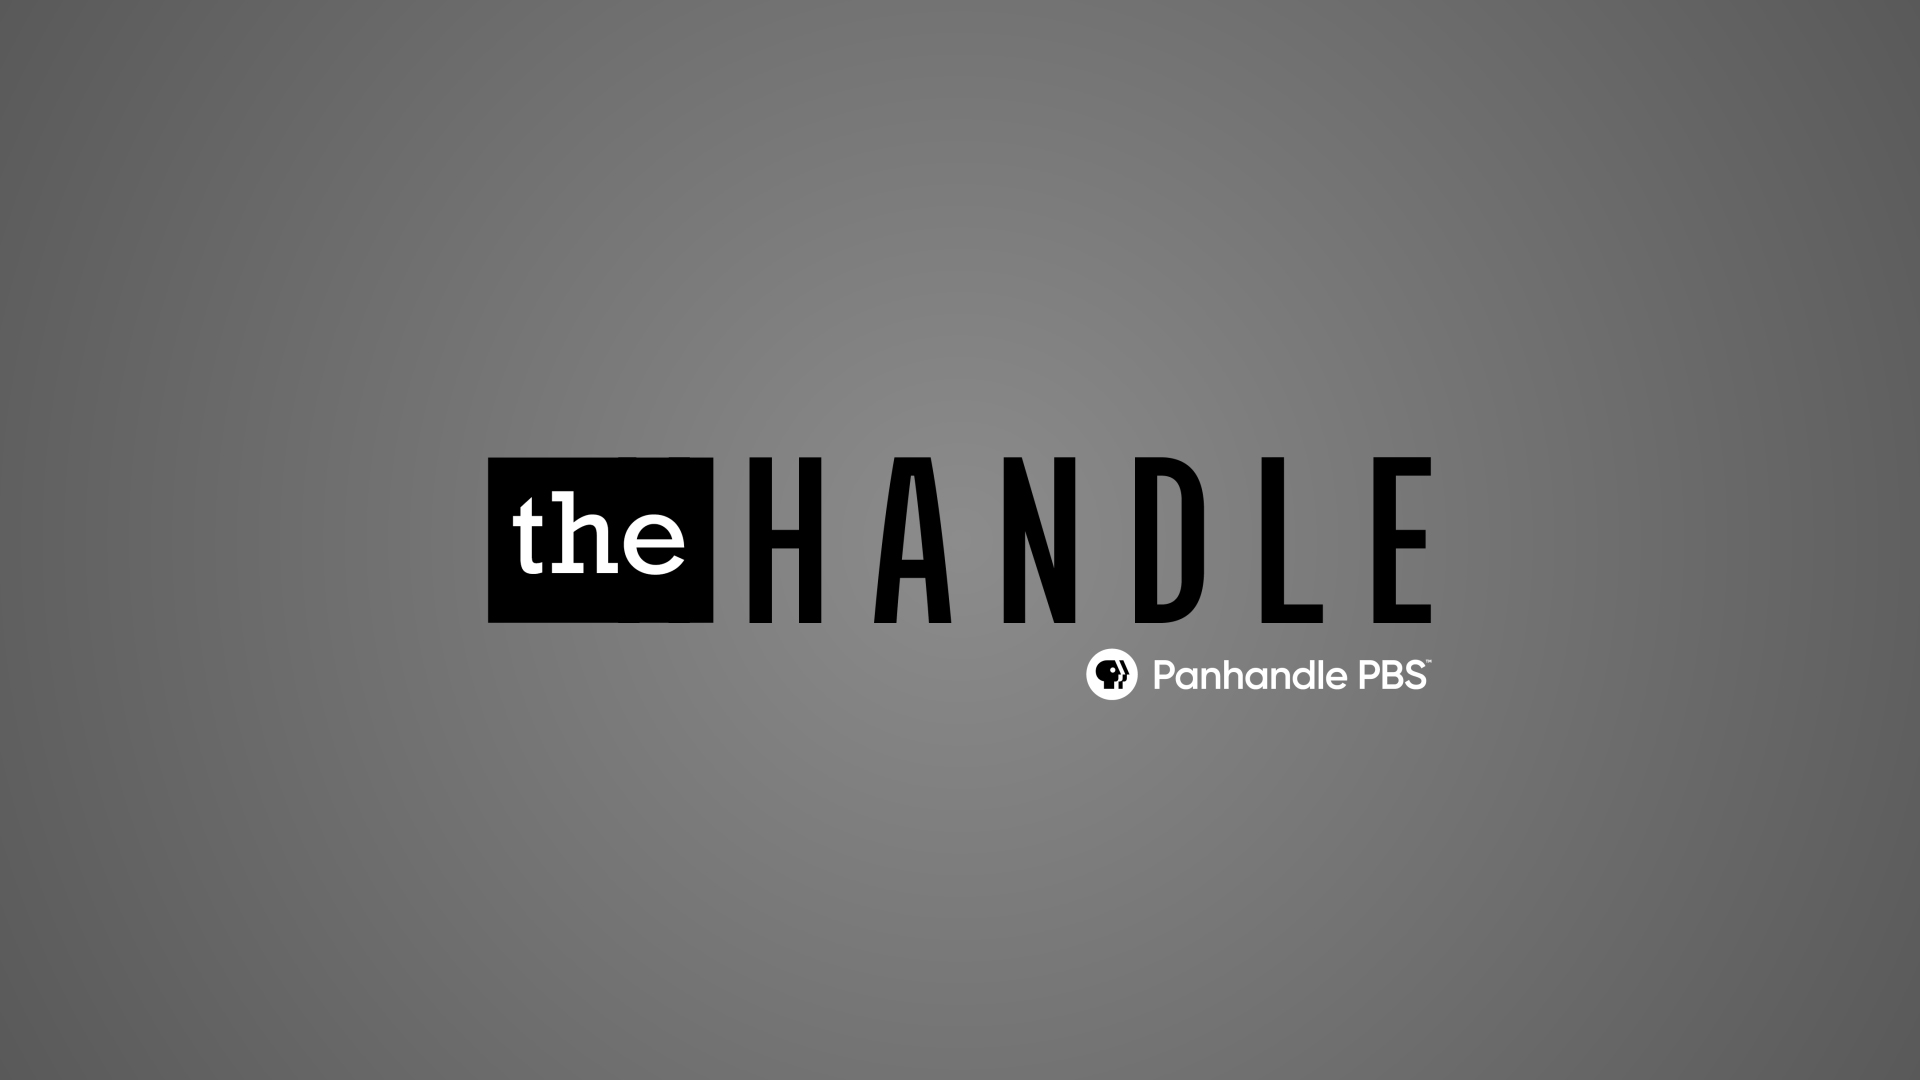 Panhandle PBS newsmagazine The Handle will return for Season 2